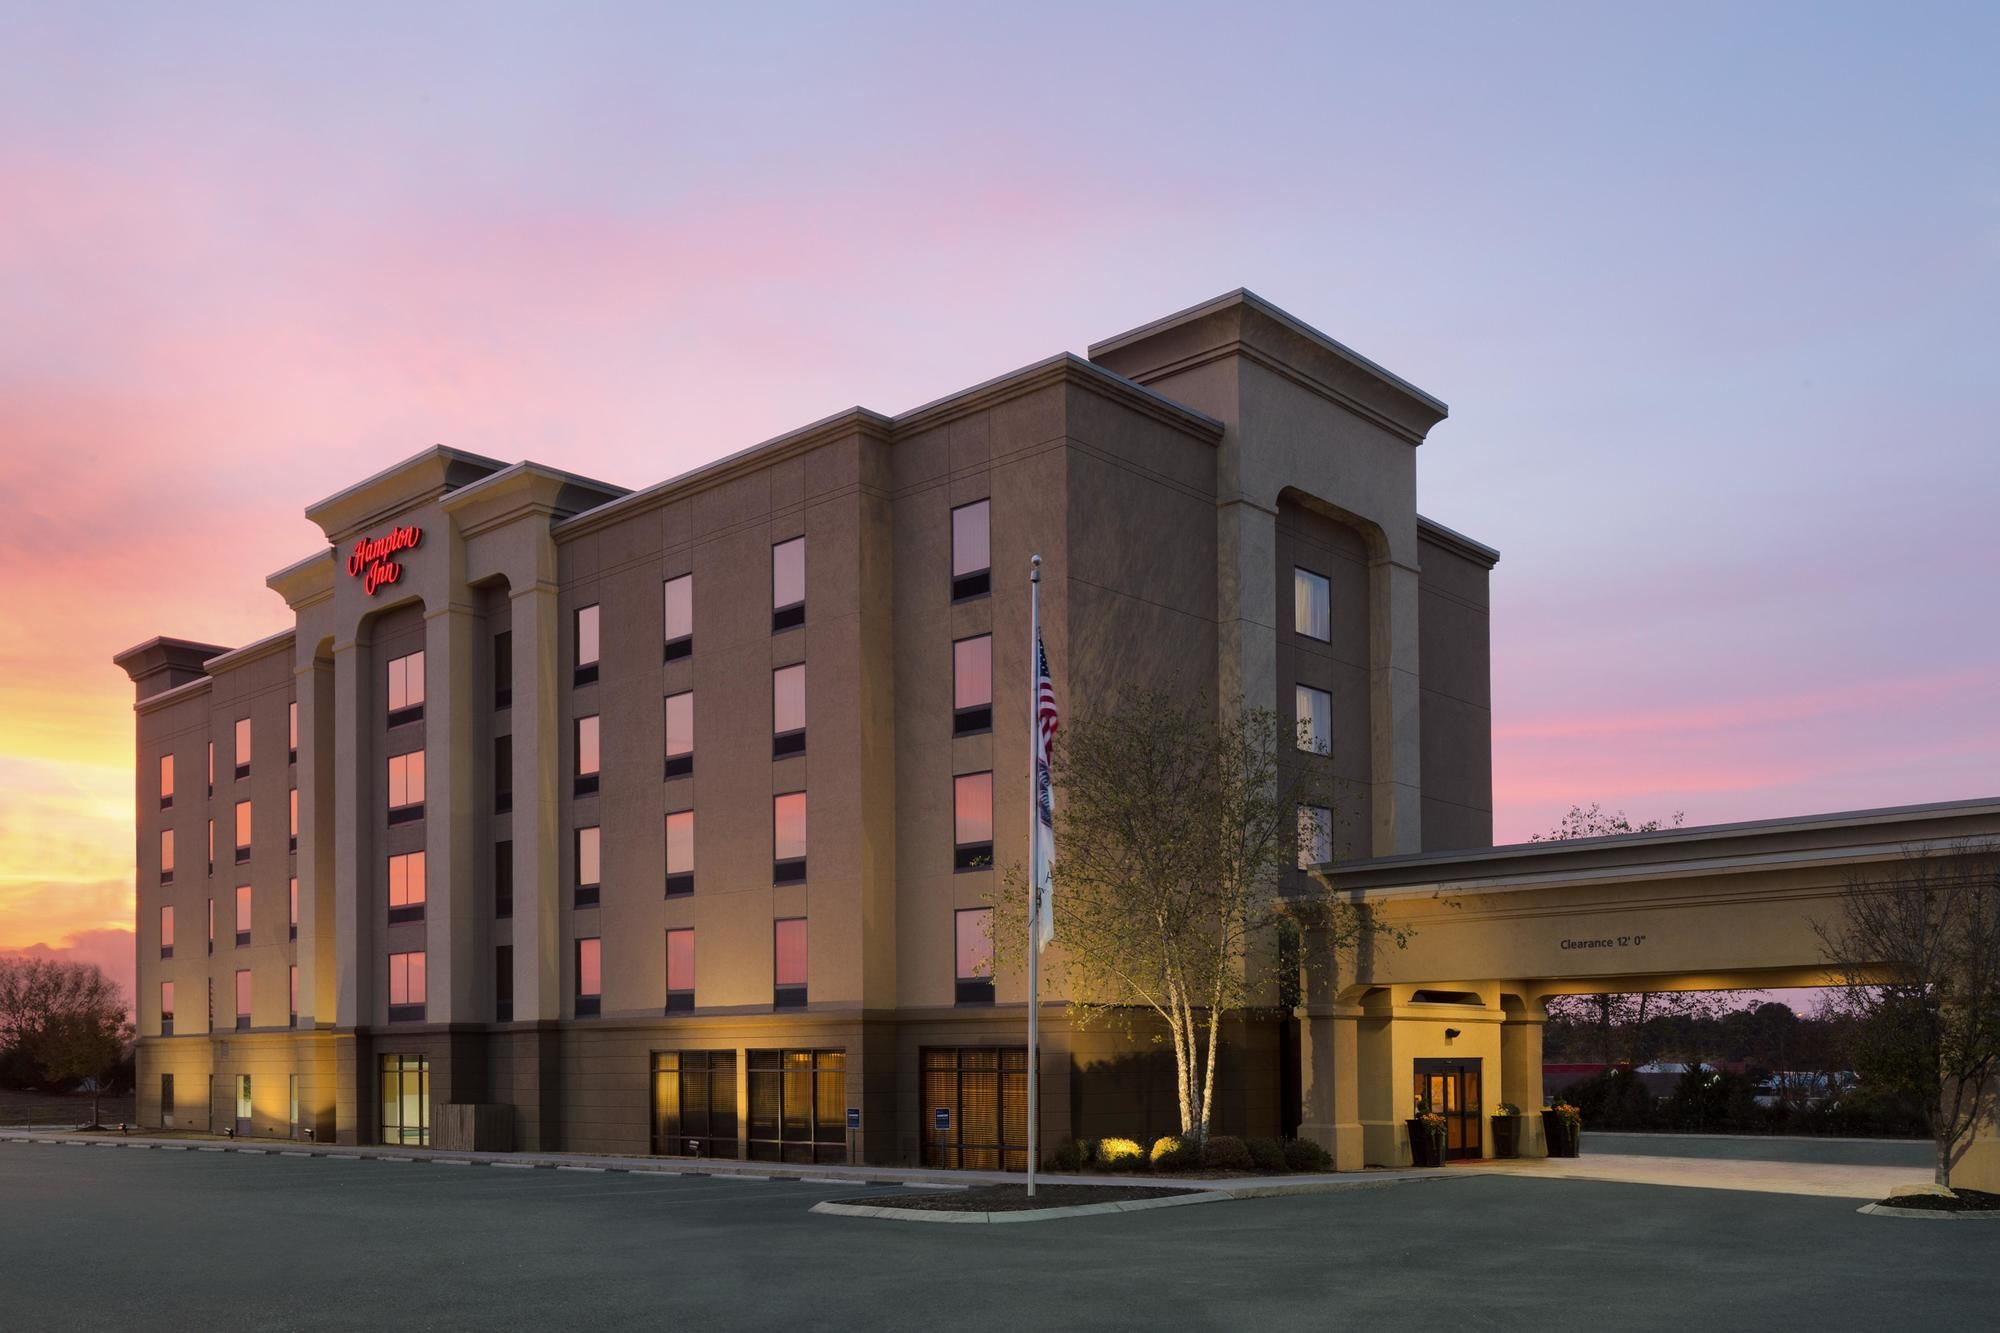 Discount coupons for americas best value inn north knoxville tn